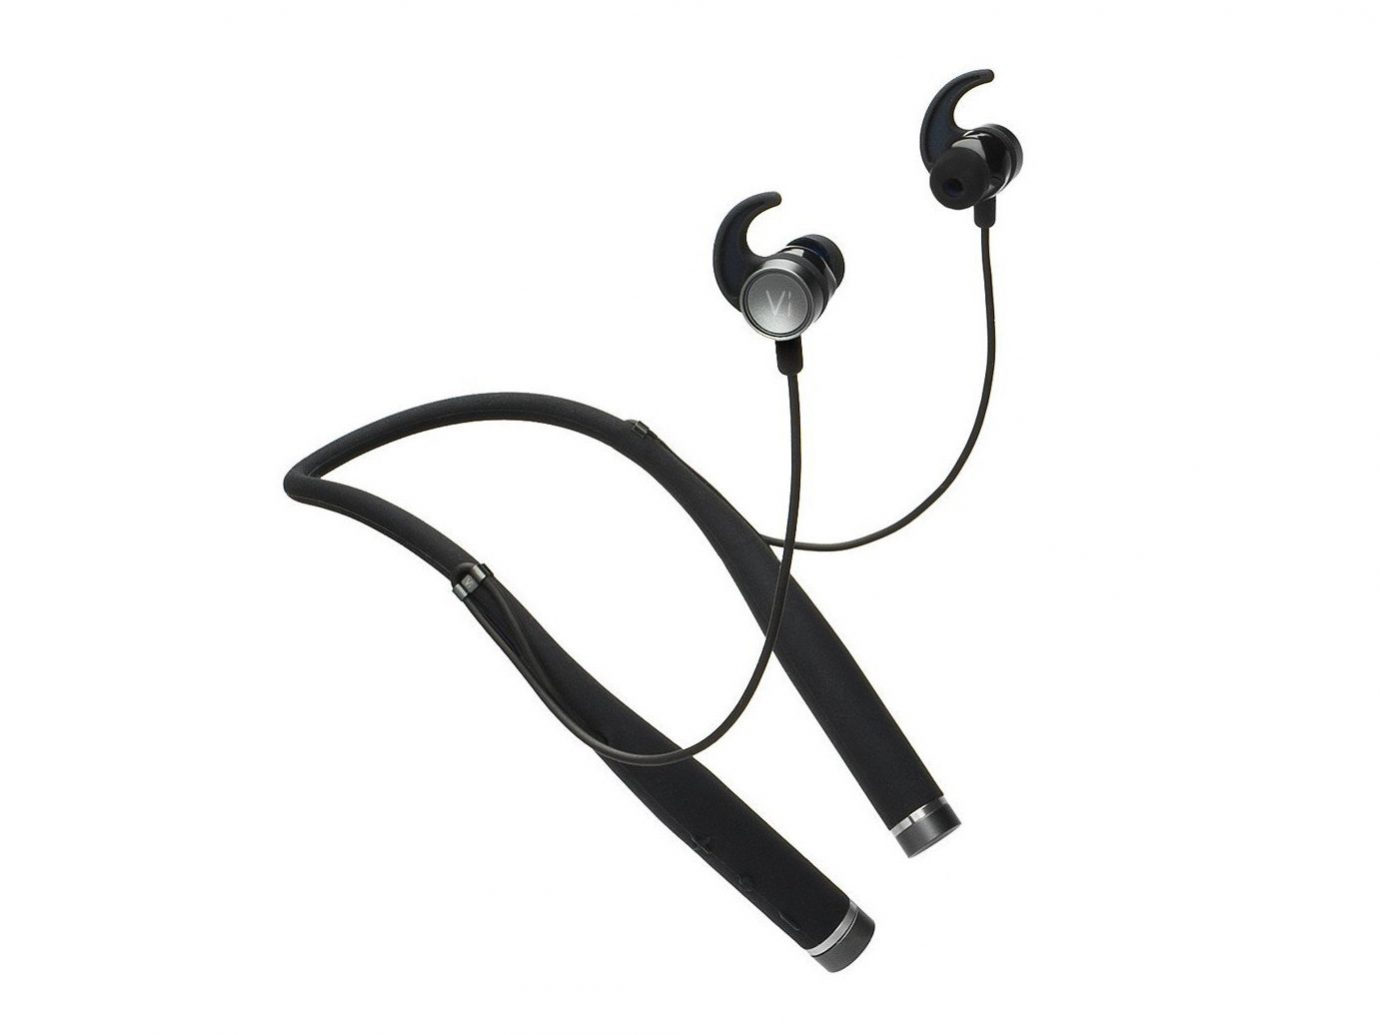 Travel Tips technology audio equipment headphones audio headset product product design body jewelry cable